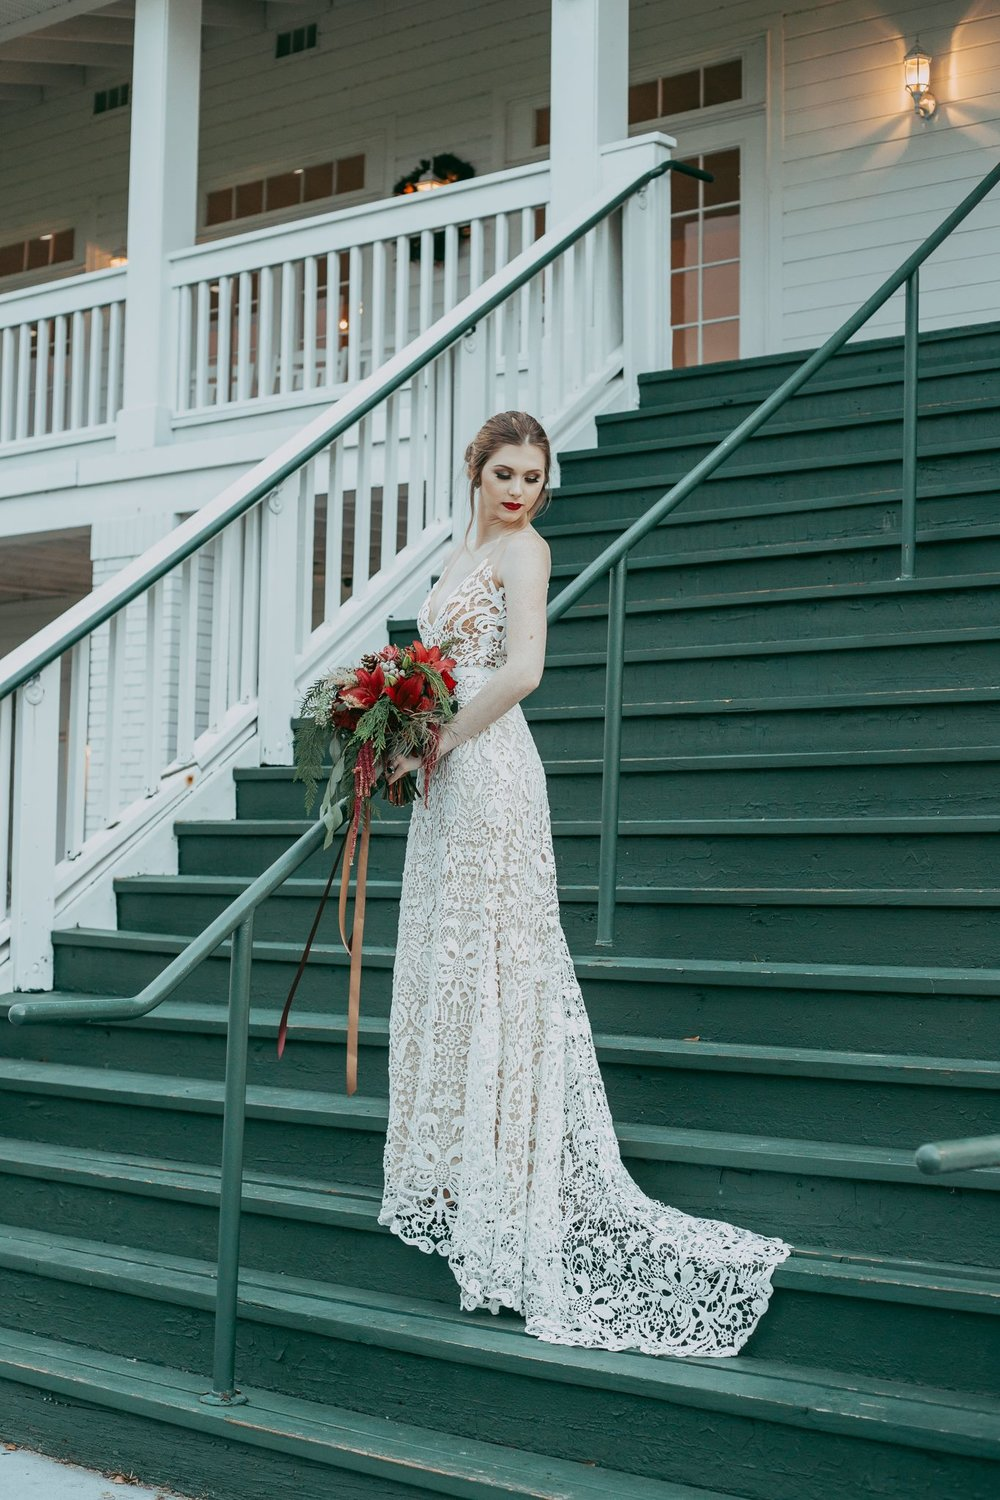 Jessica Gown - From the Fall 2018 Collection - lightest ivory crochet lace lined in a nude silk crepe.  V-neck lace bodice gown with illusion straps. Sits low in the back. Fit and flare style with gorgeous train.  Invisible zipper closure. Each dress is made by hand in the USA by our designers.  We hand picked the pattern of this lace and what a gorgeous look indeed!